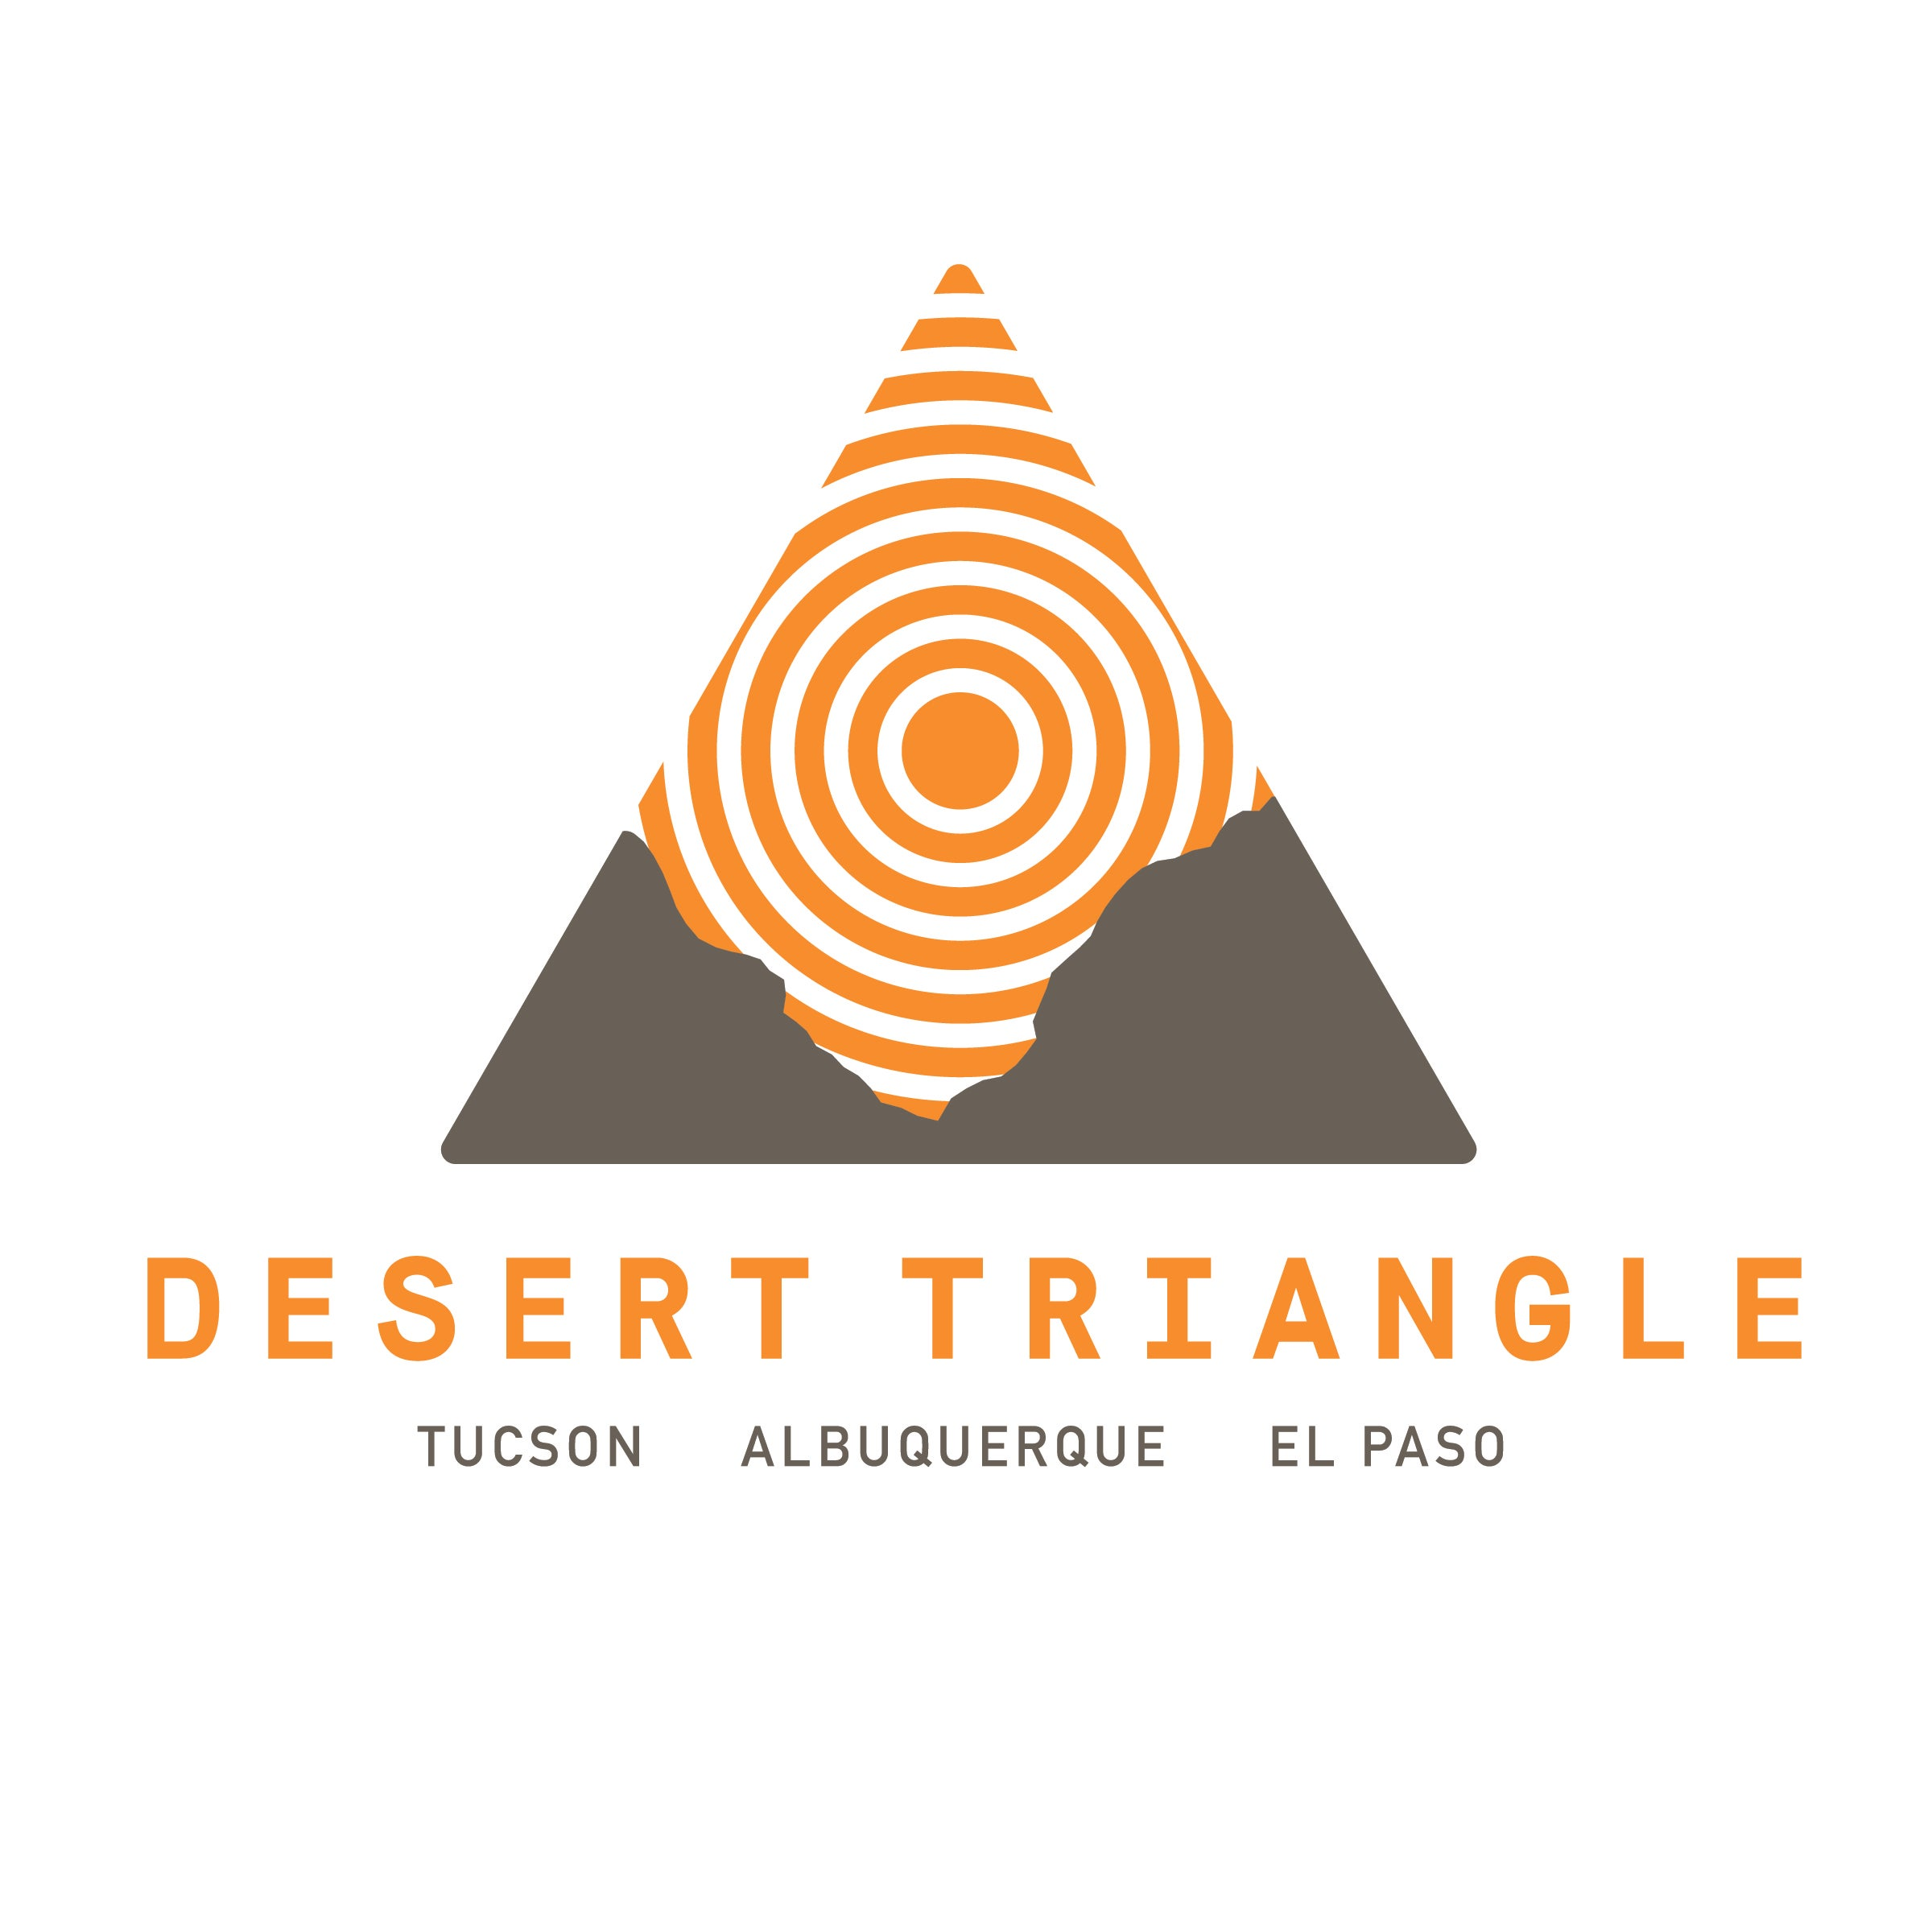 Desert Triangle Print Carpeta